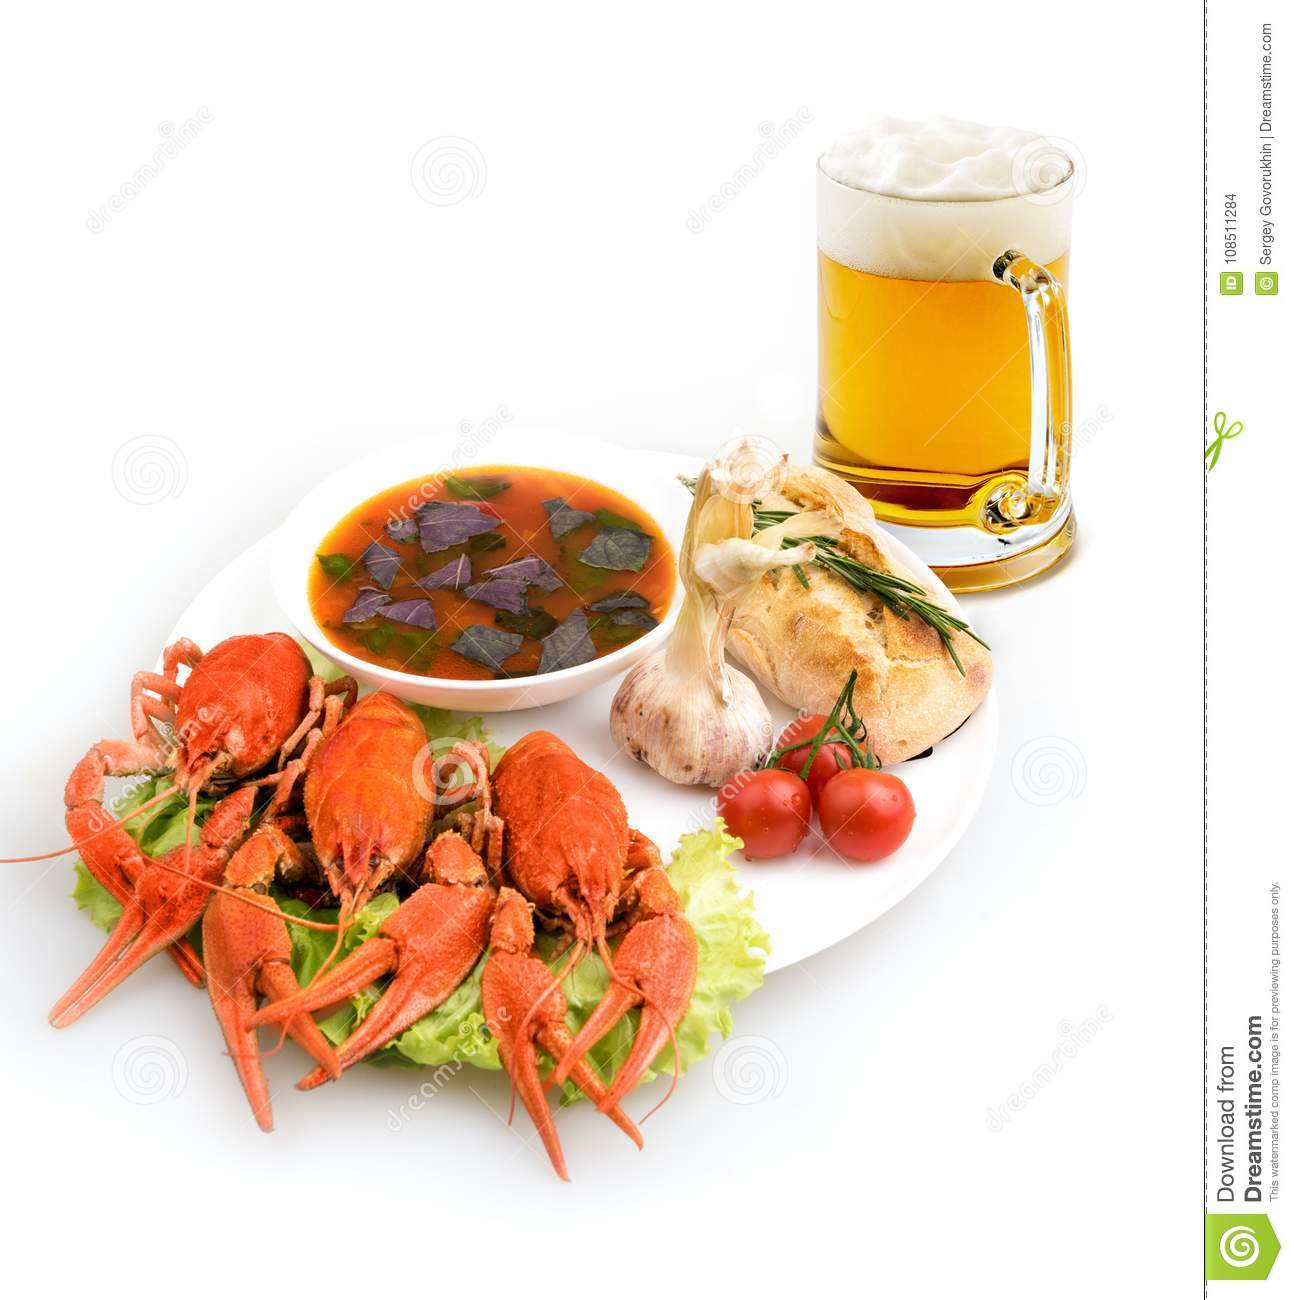 Dish cooked crayfish, soup and beer